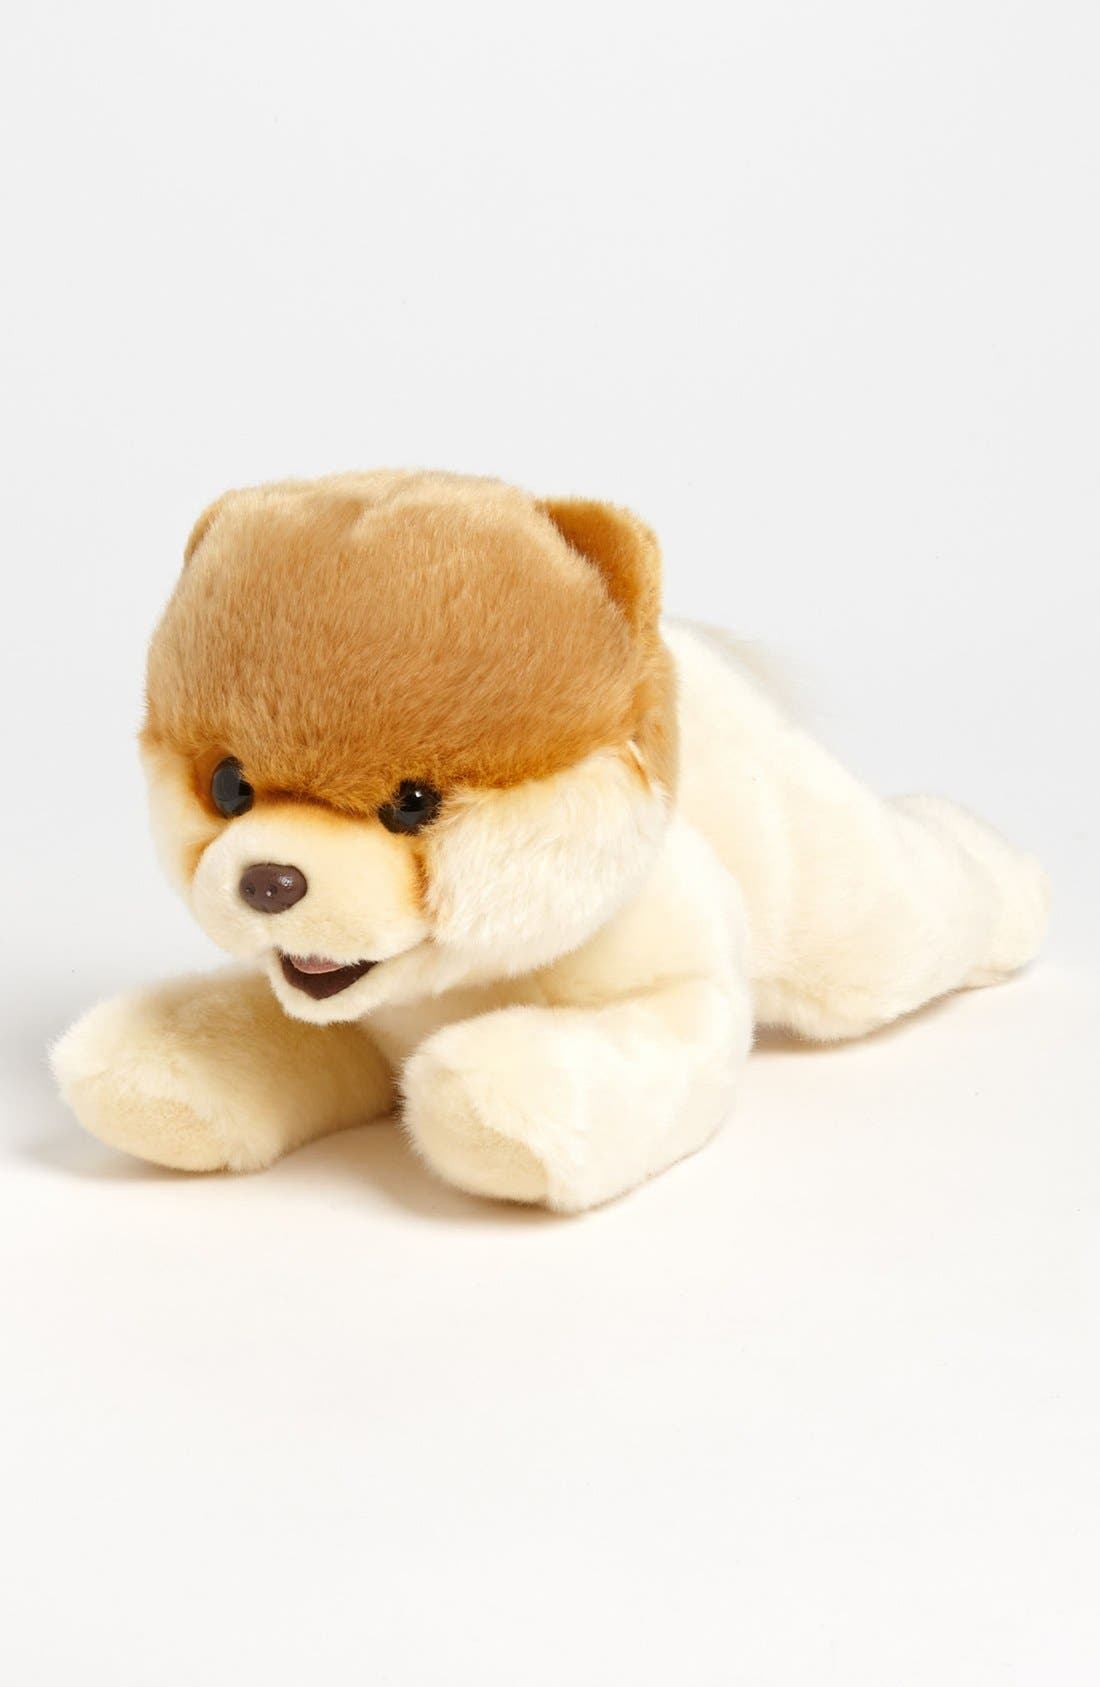 Alternate Image 1 Selected - Gund 'Boo - World's Cutest Dog' Stuffed Animal